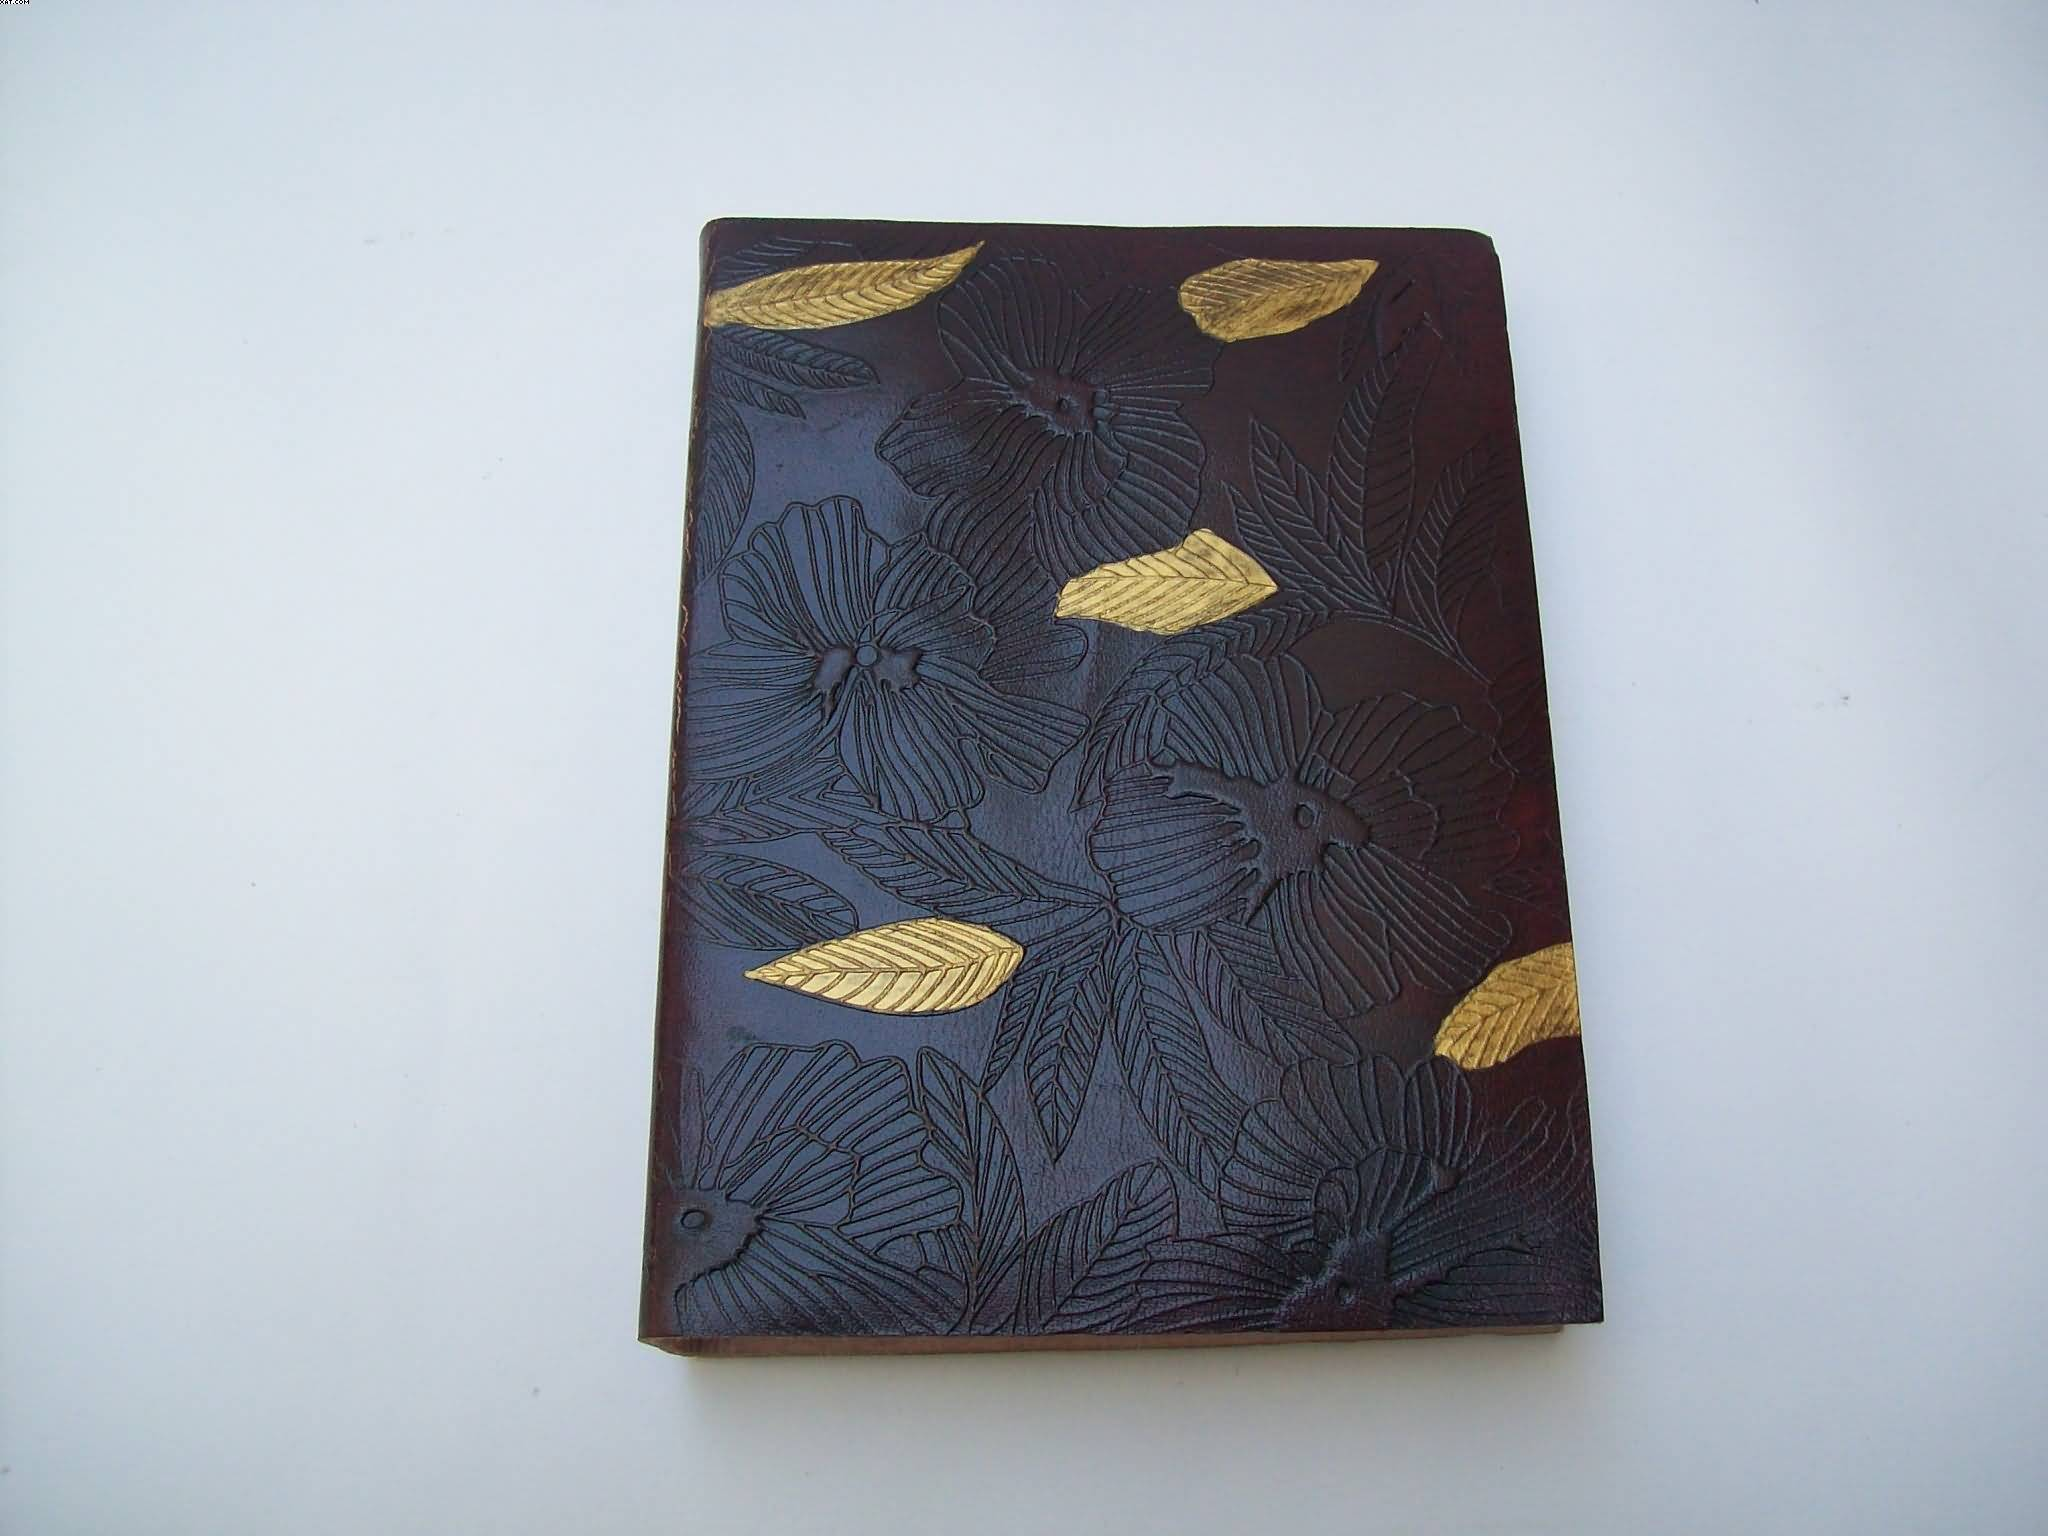 Embossed and Hand Painted Creative Journal at Affordable Cost